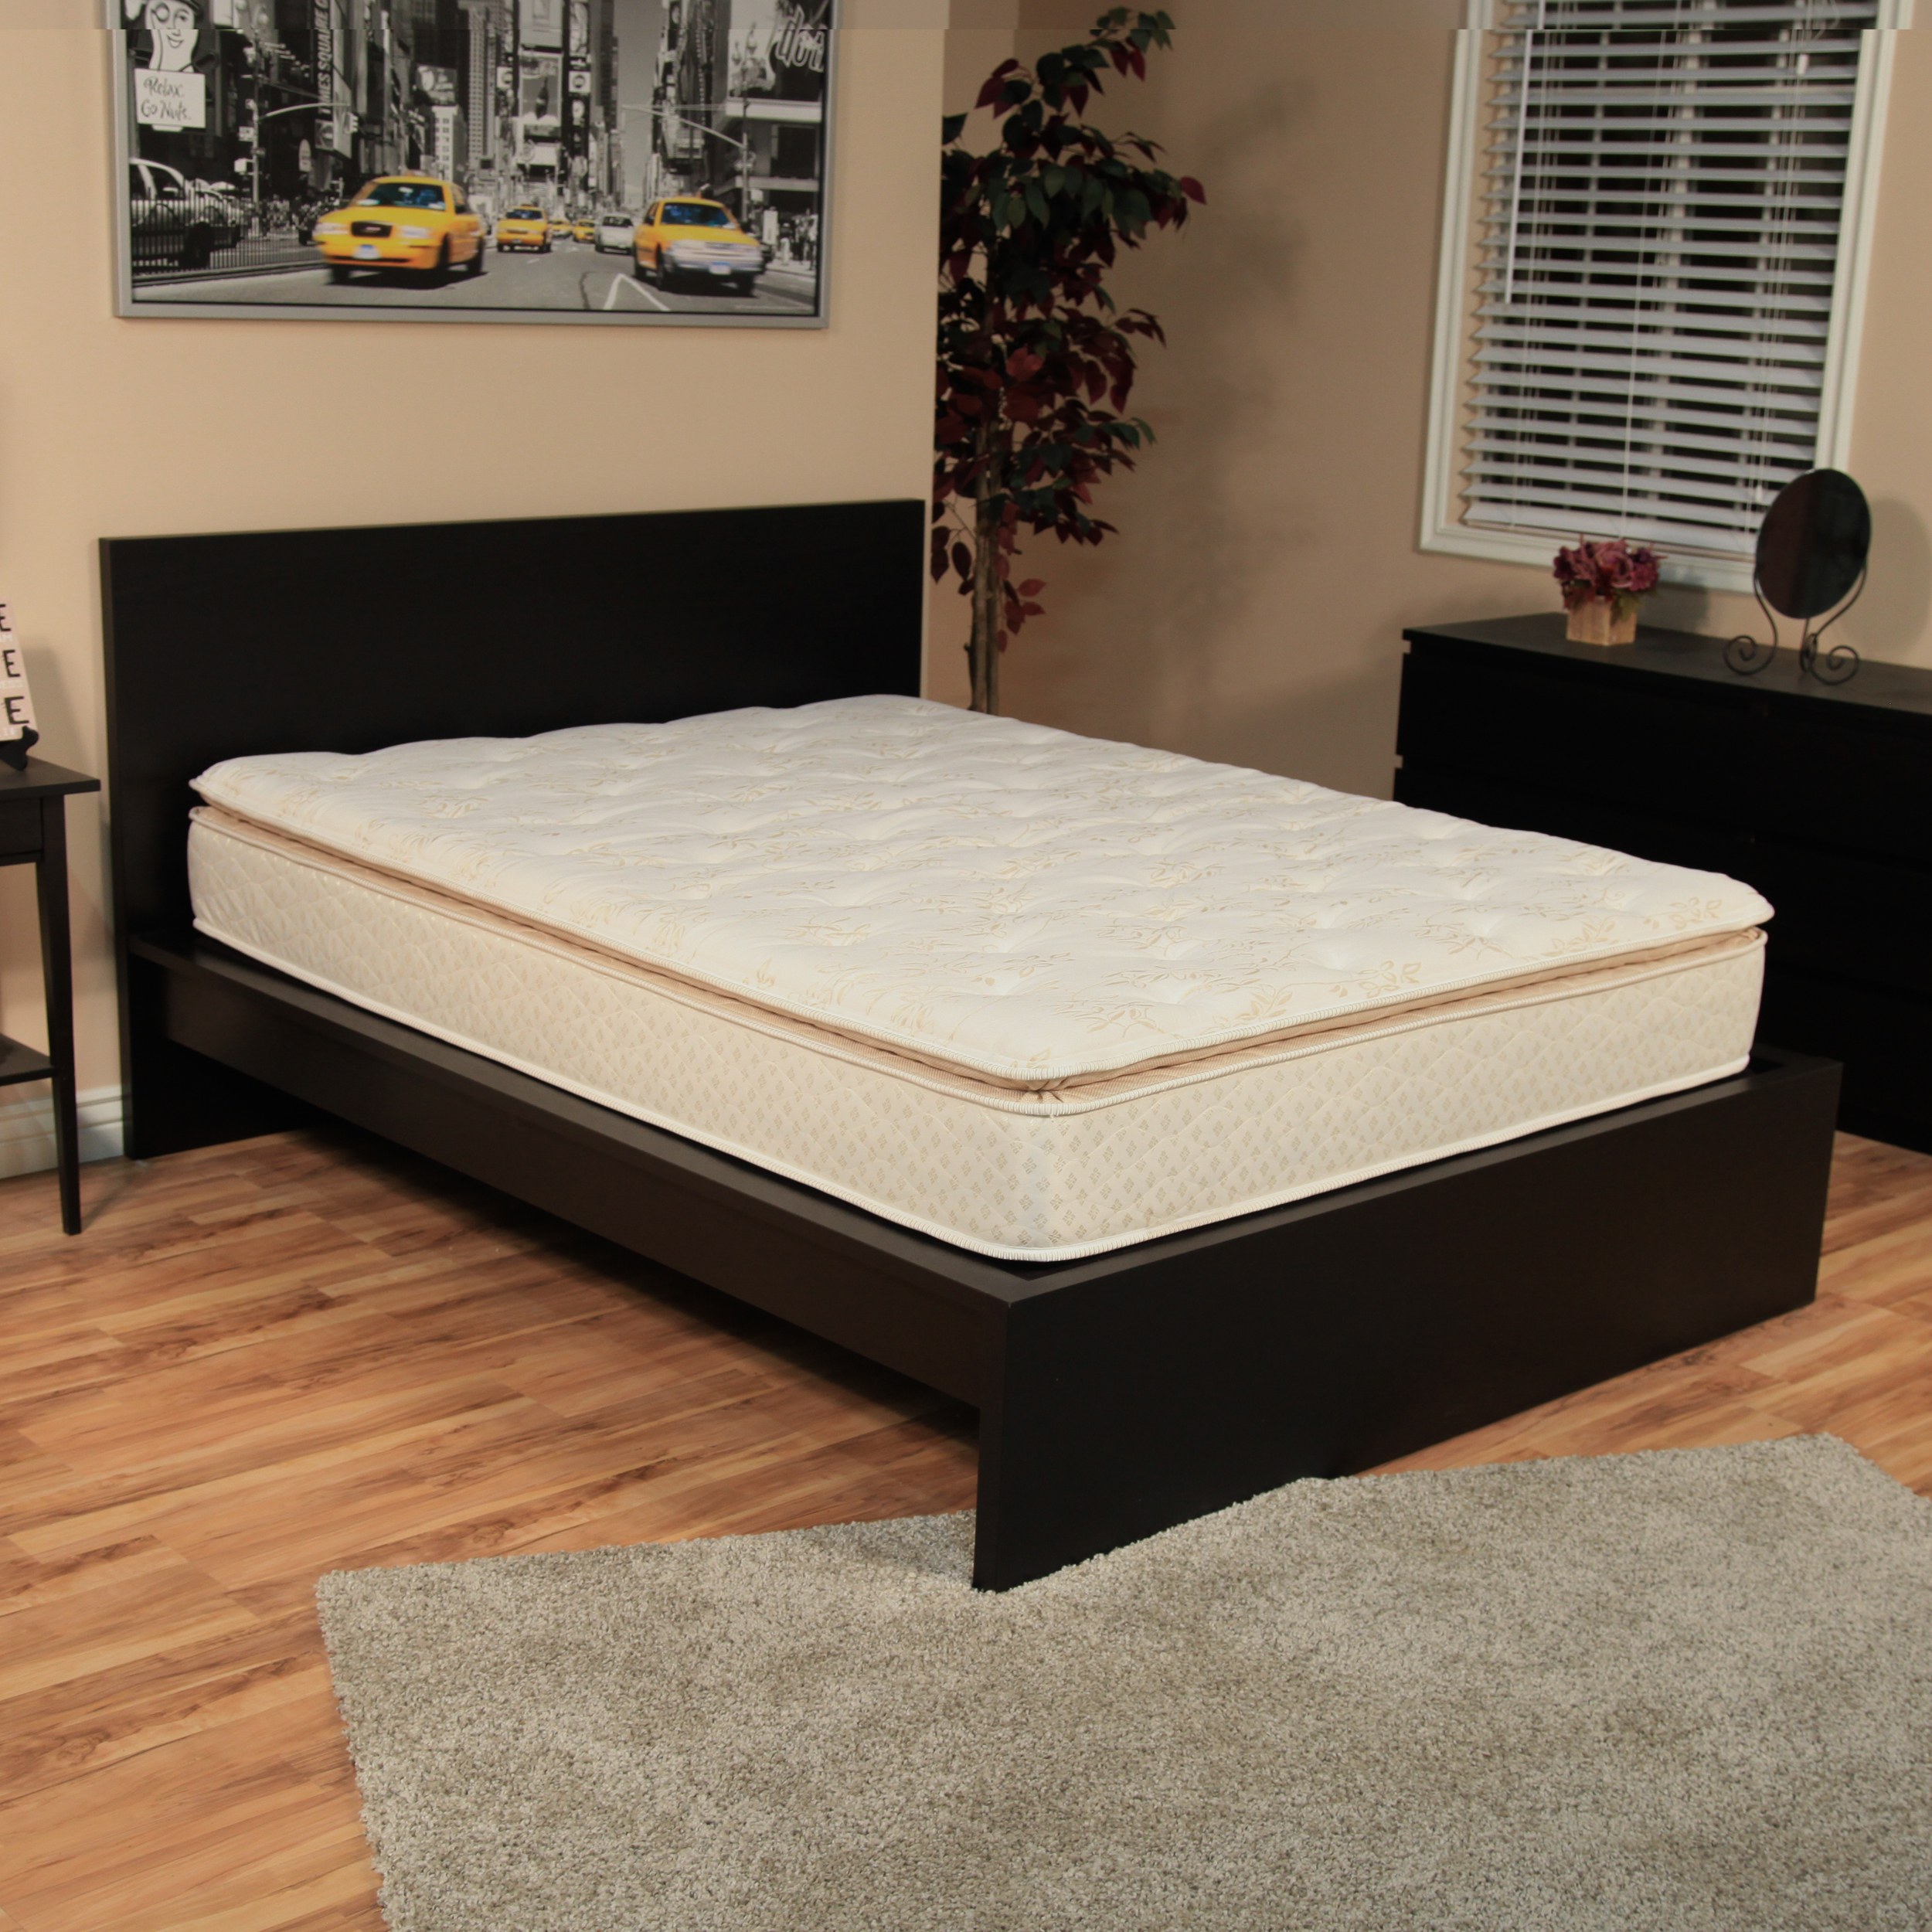 nuform quilted pillow top 11 inch full xl size foam mattress steel bed frame